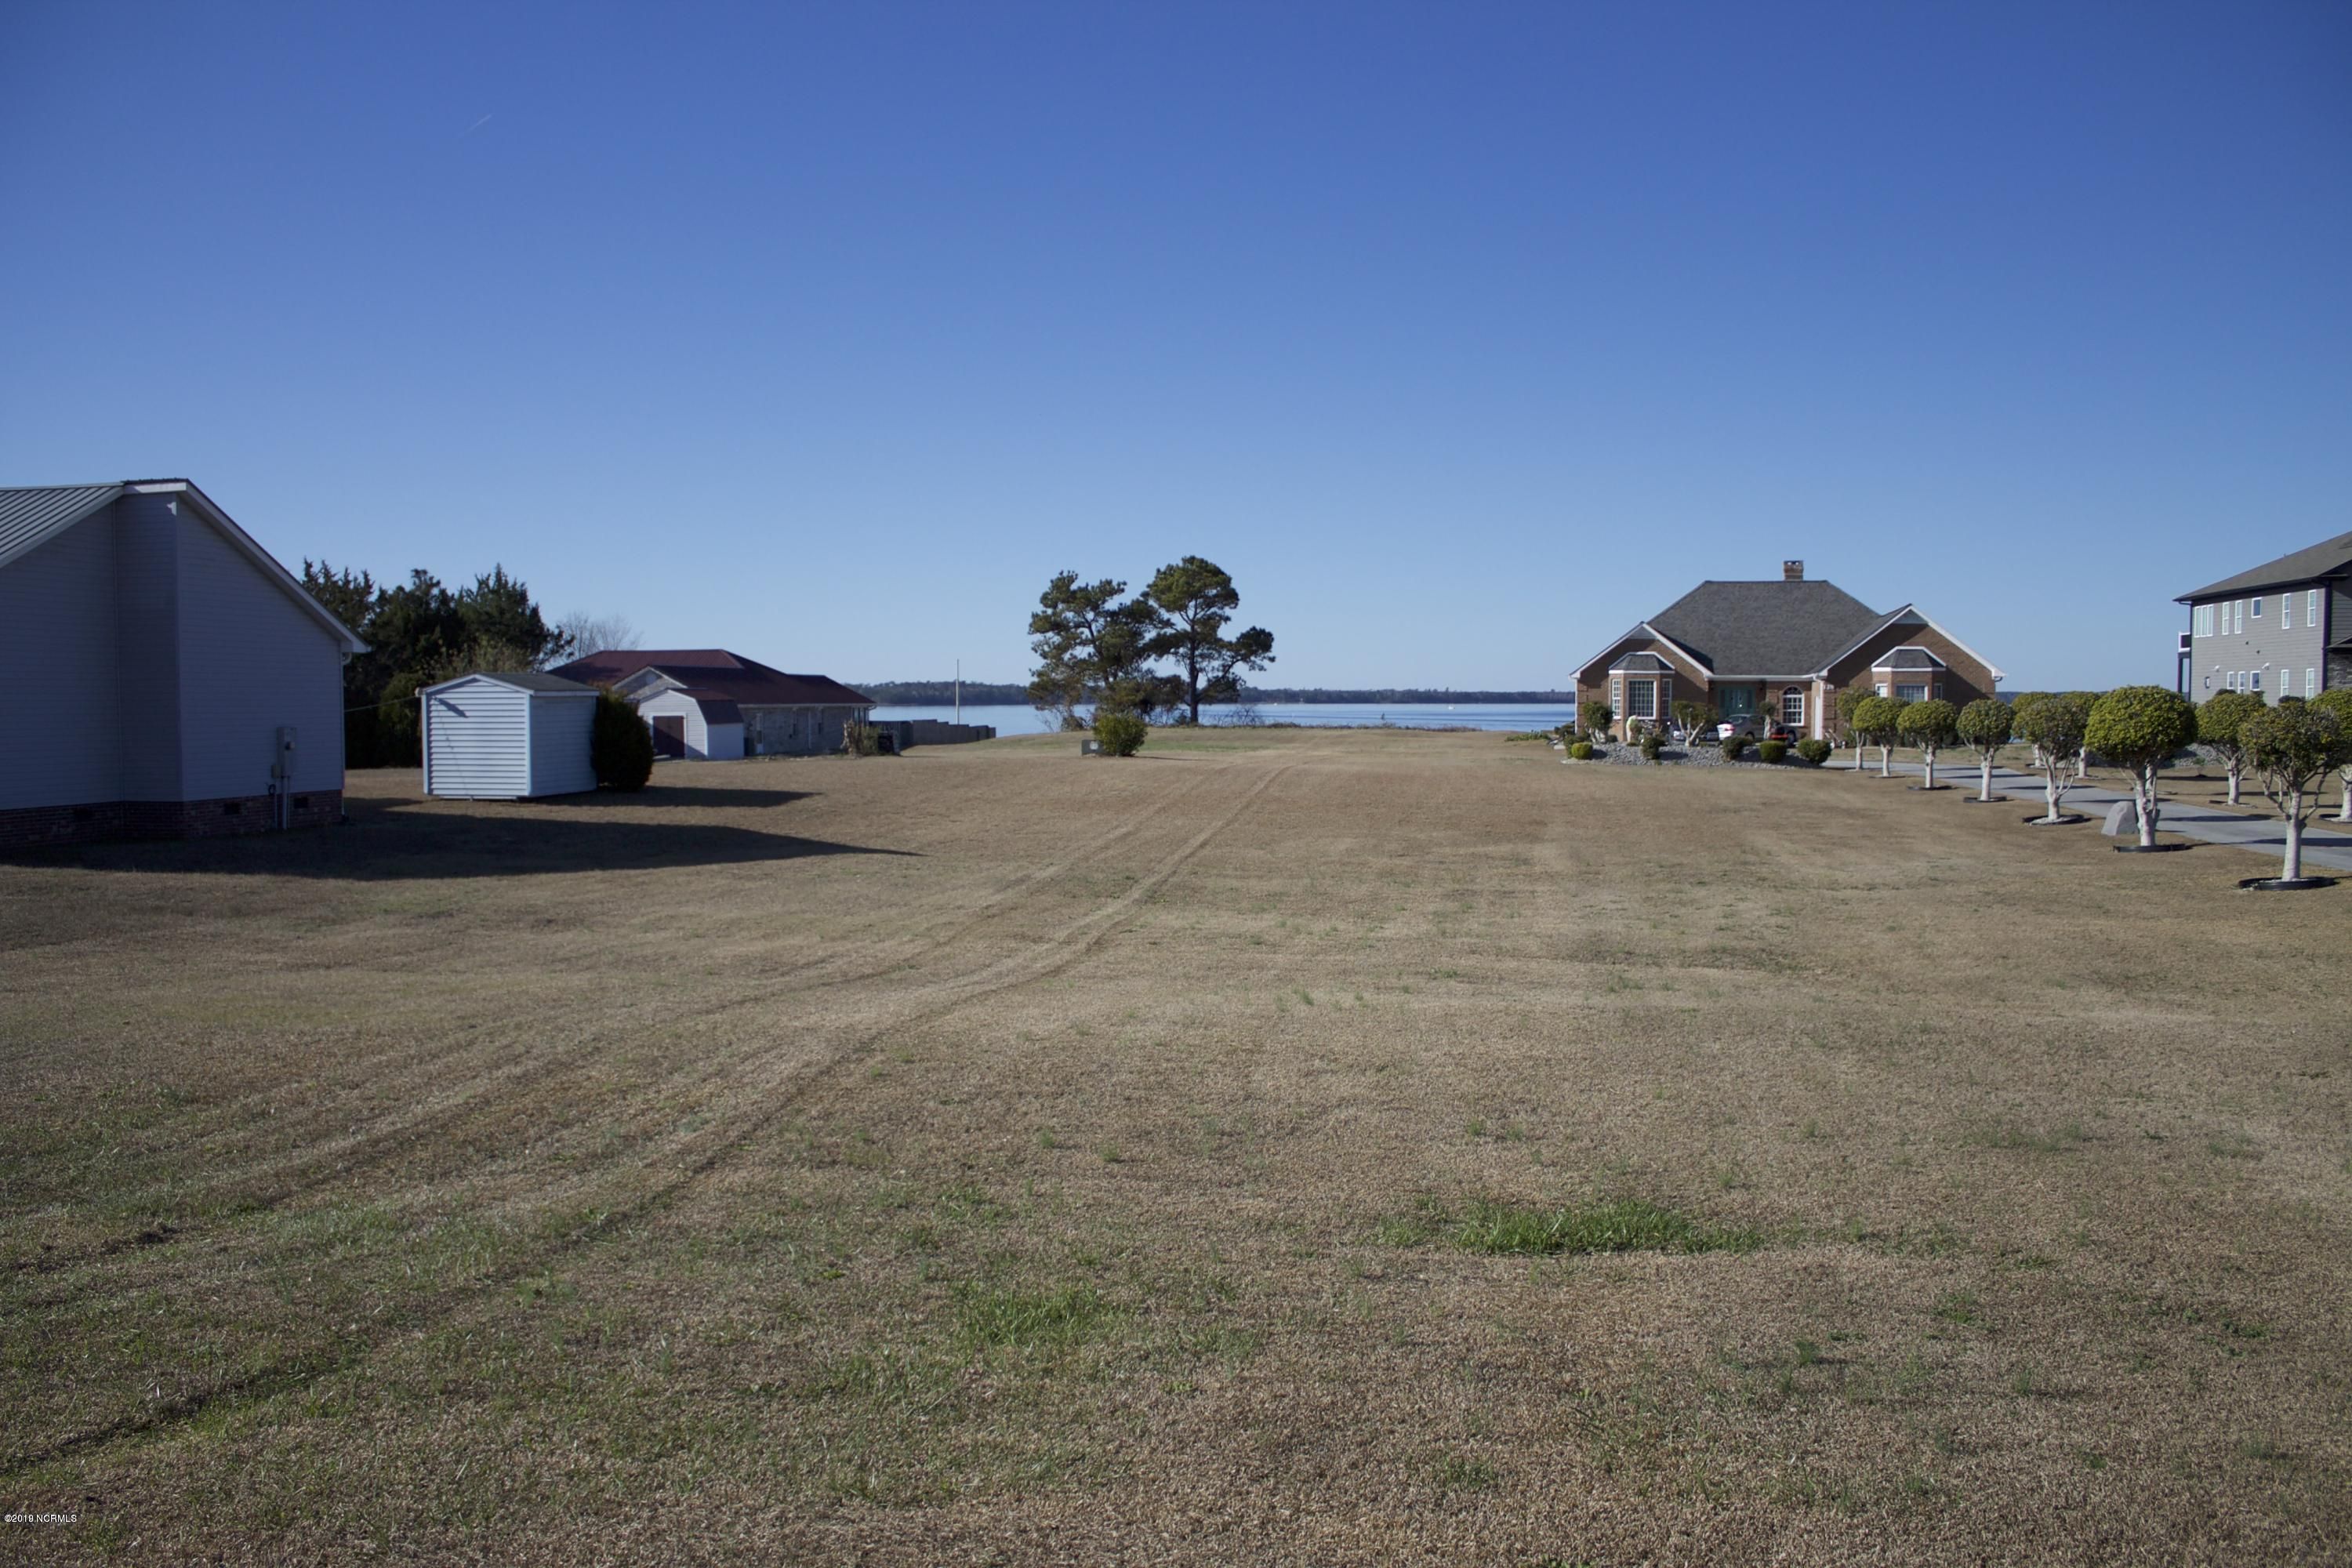 Build your dream home on this waterfront lot on the New River. Beautiful view of Stone Bay. Easy access to New River Inlet. Located off Hwy 172, just outside of the Camp Lejeune back gate.